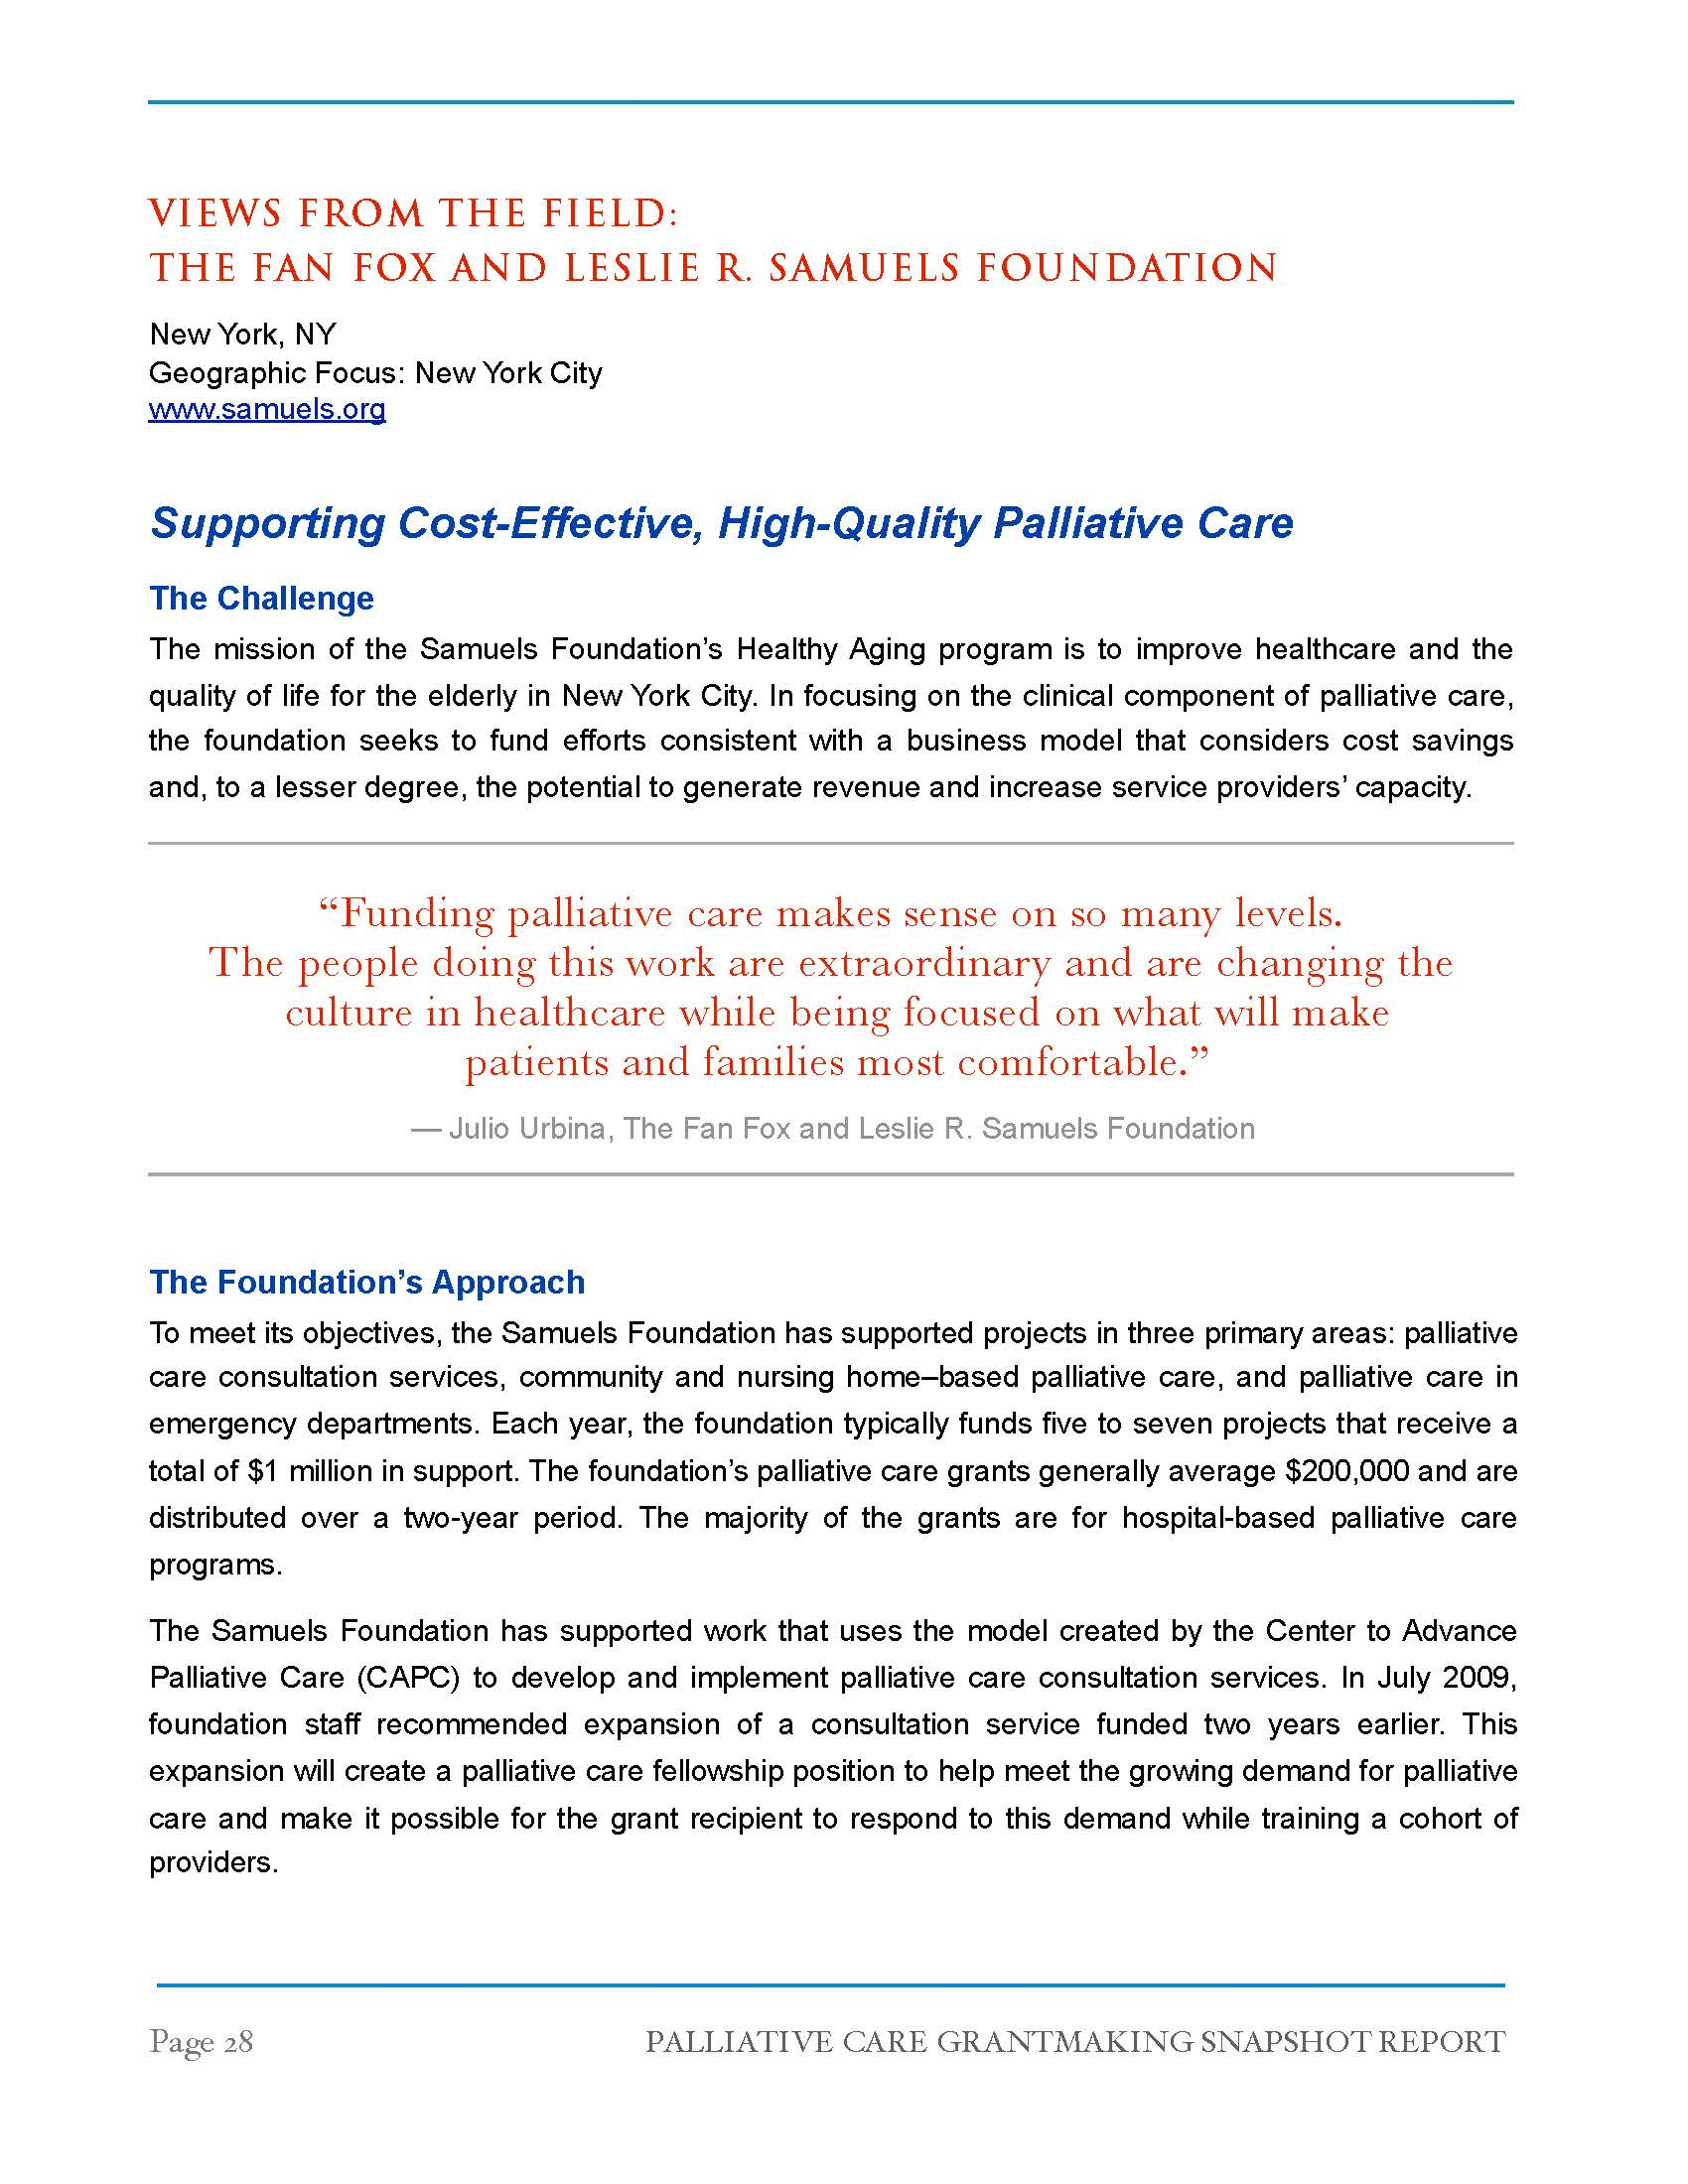 Palliative Care Grantmaking Snapshot Report_Page_30.jpg